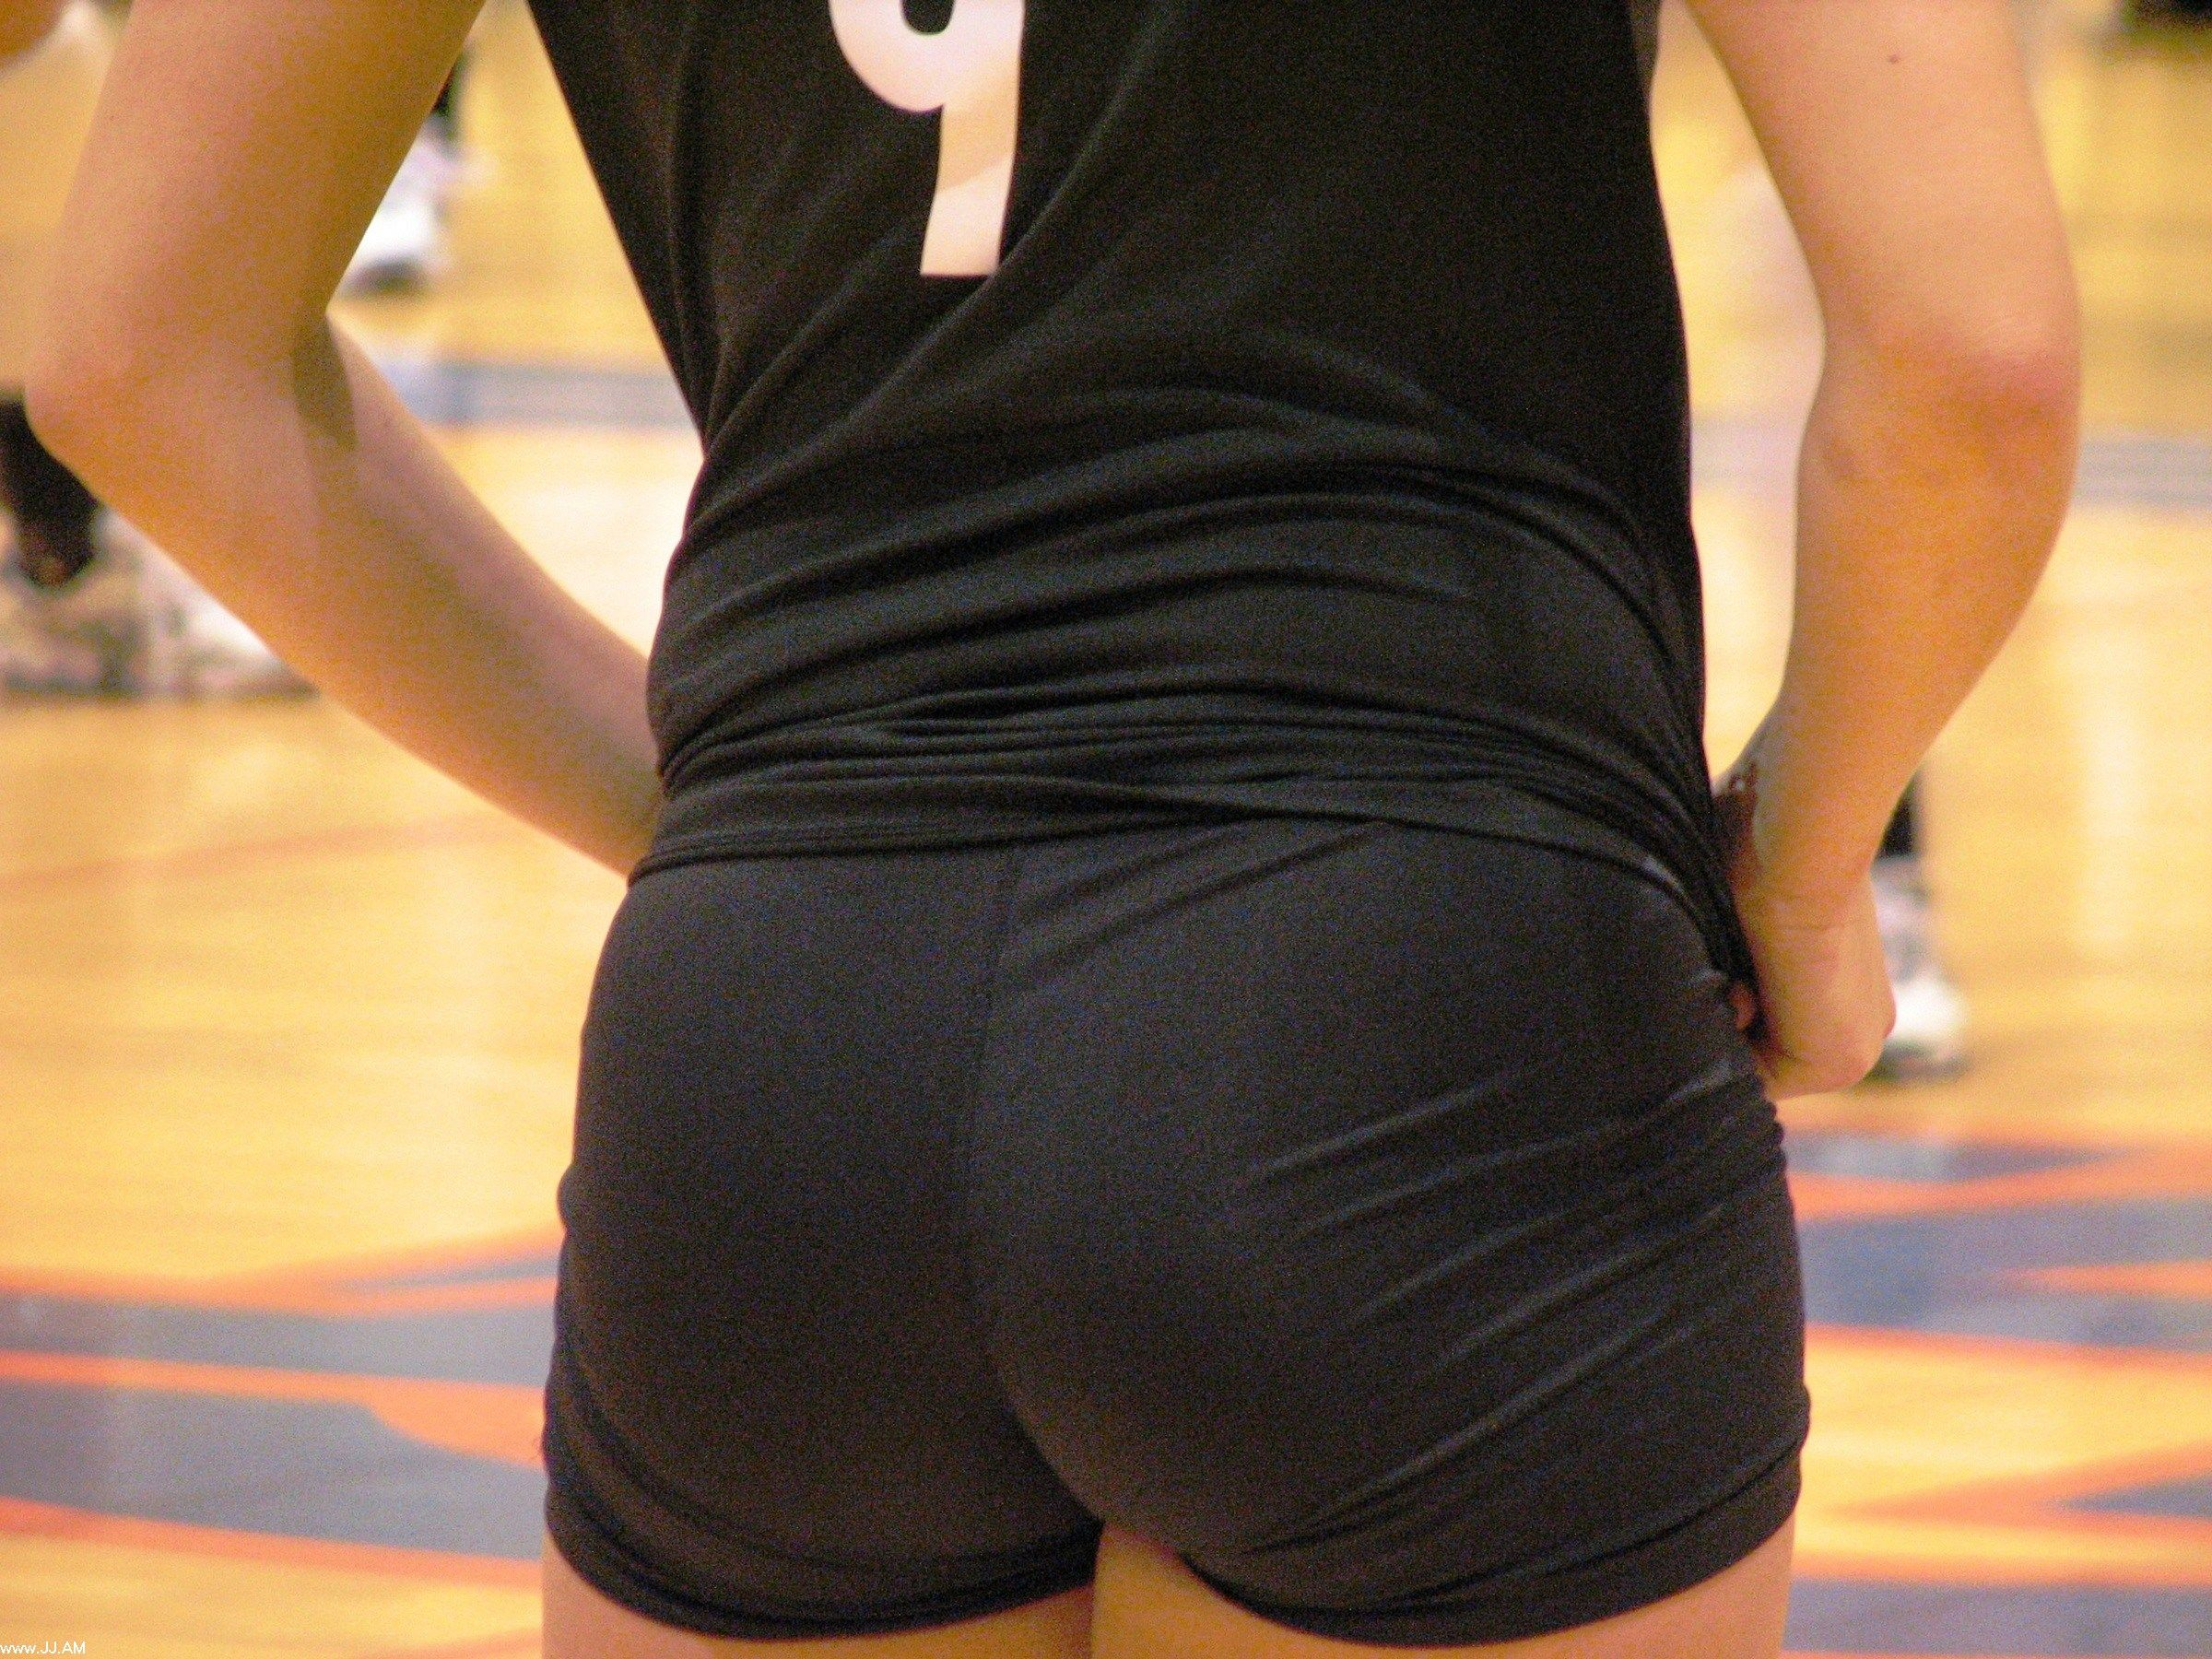 tight-volleyball-shorts-how-a-guy-loses-his-virginity